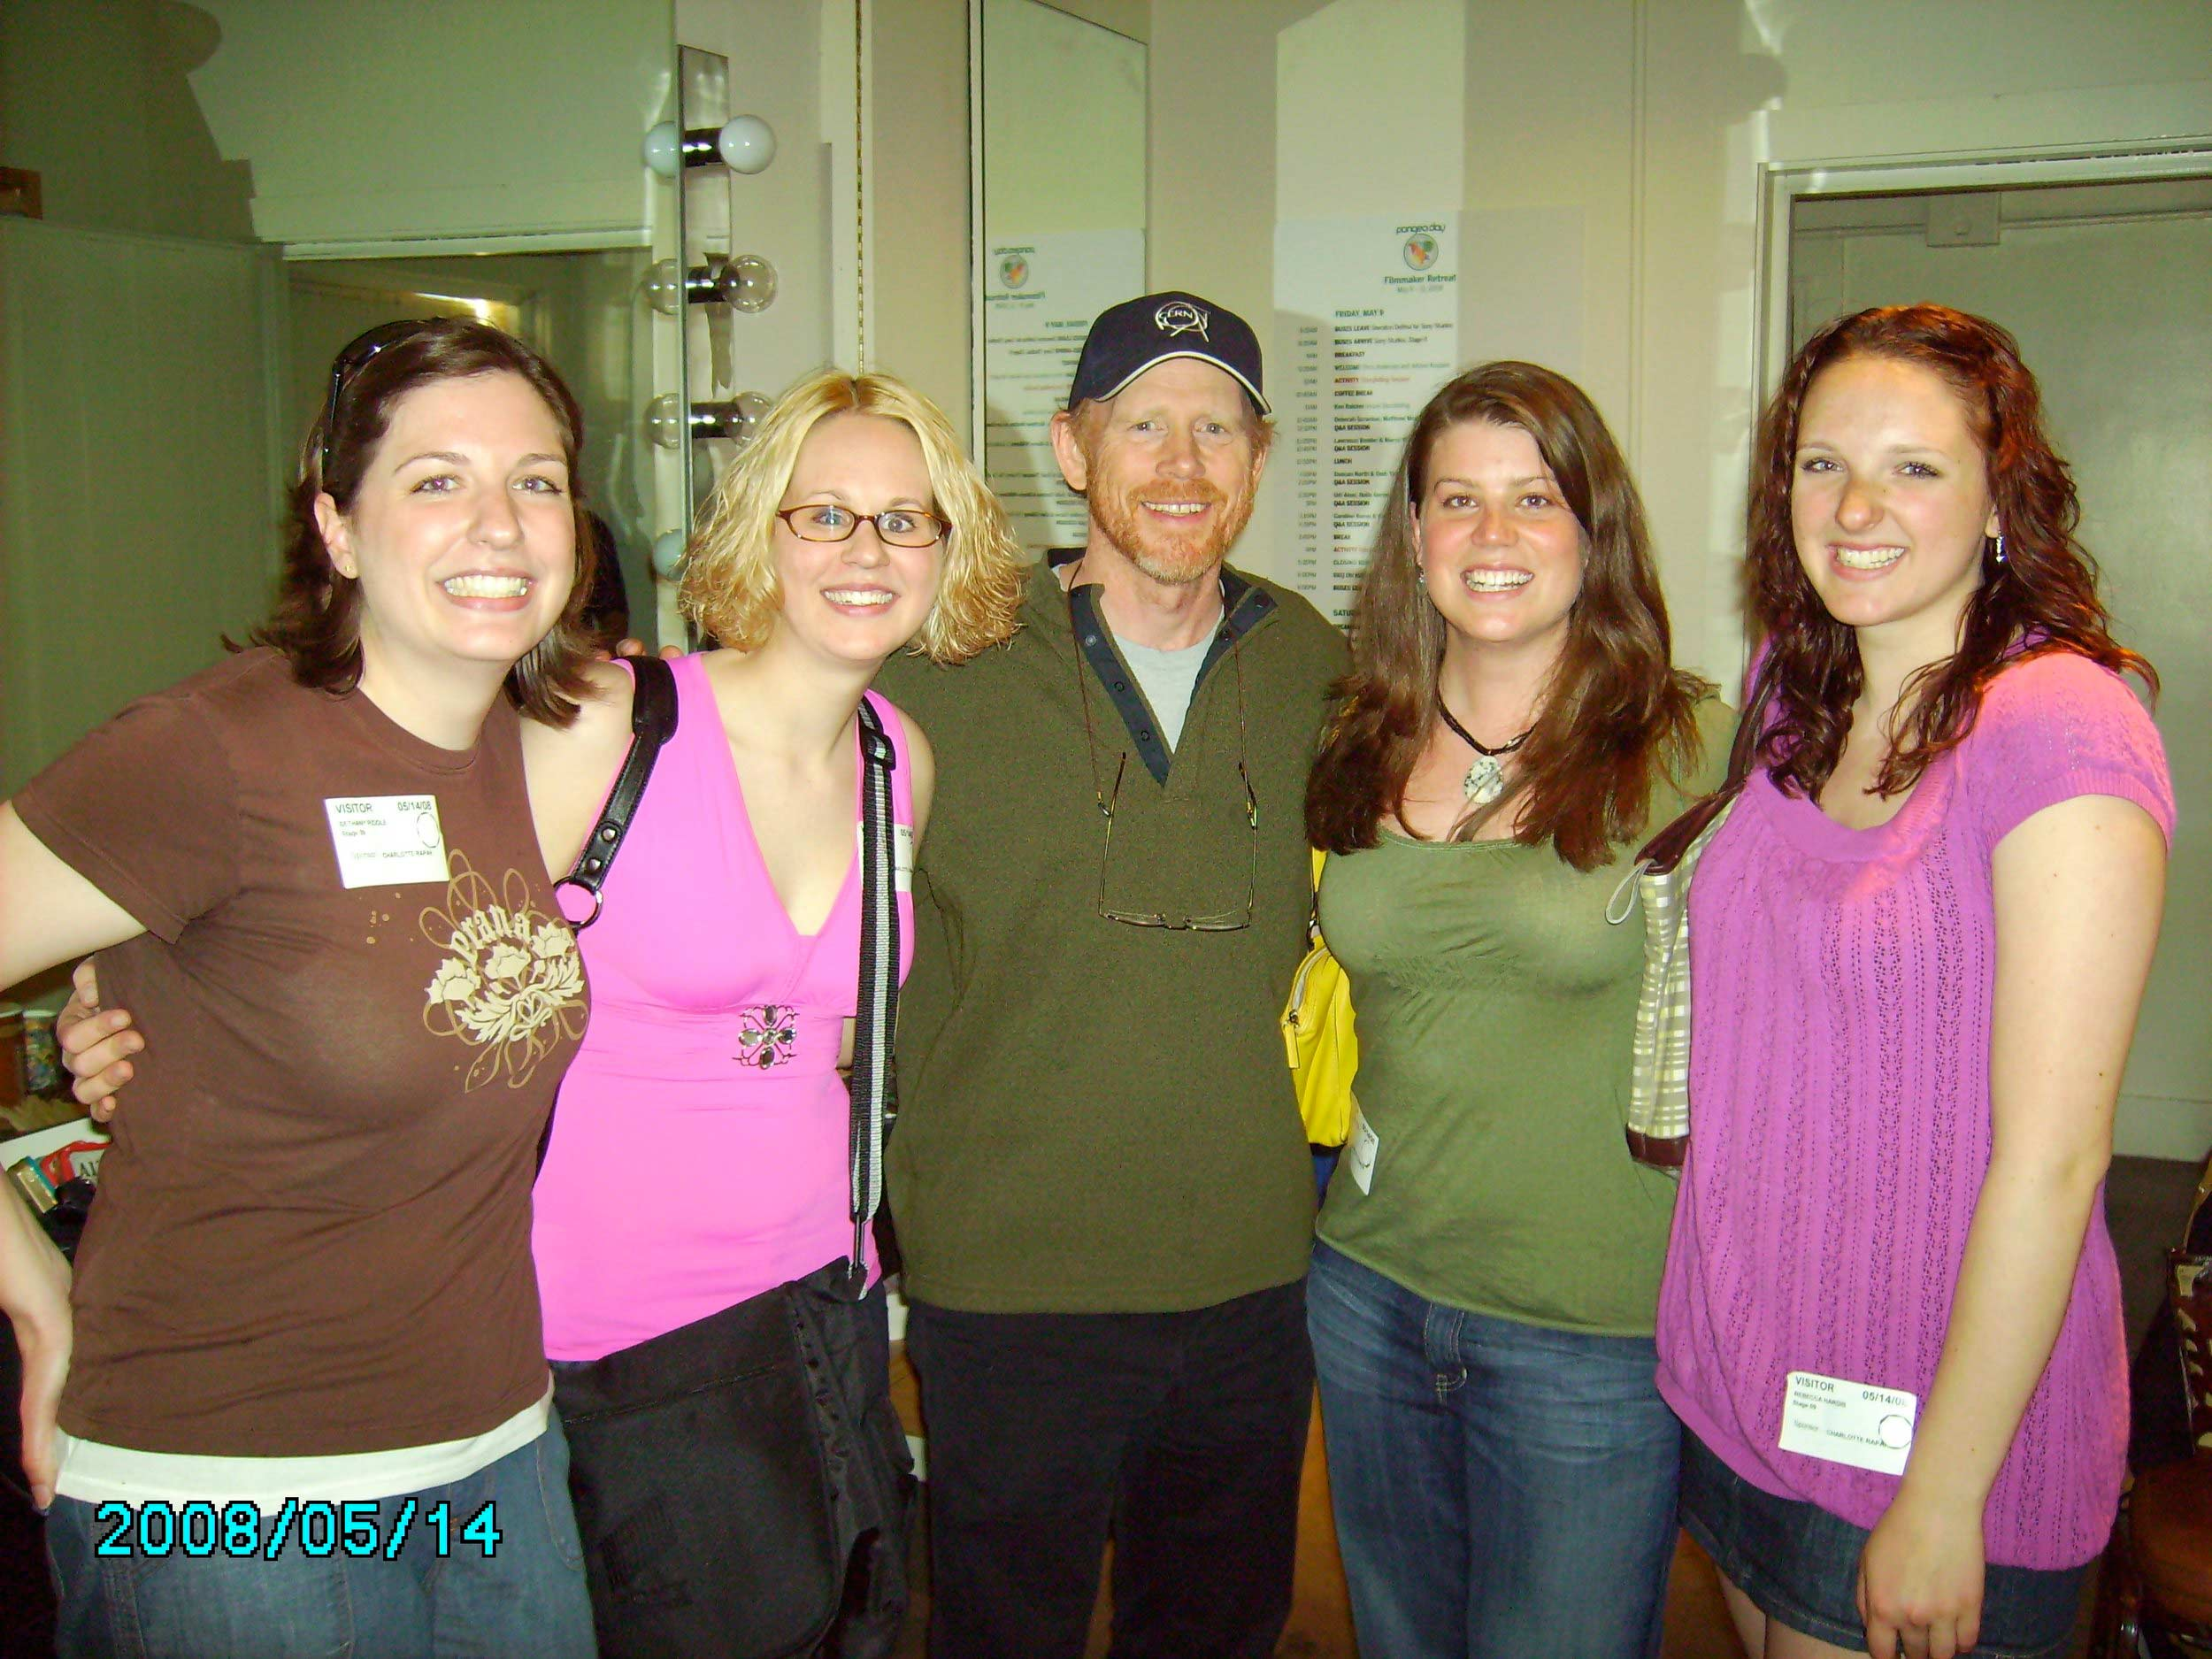 Jenny Hargis meets Ron Howard   Dream Ambassador Jenny had a smile that lit up the room her joy continues to live in the hearts of all those she touched.